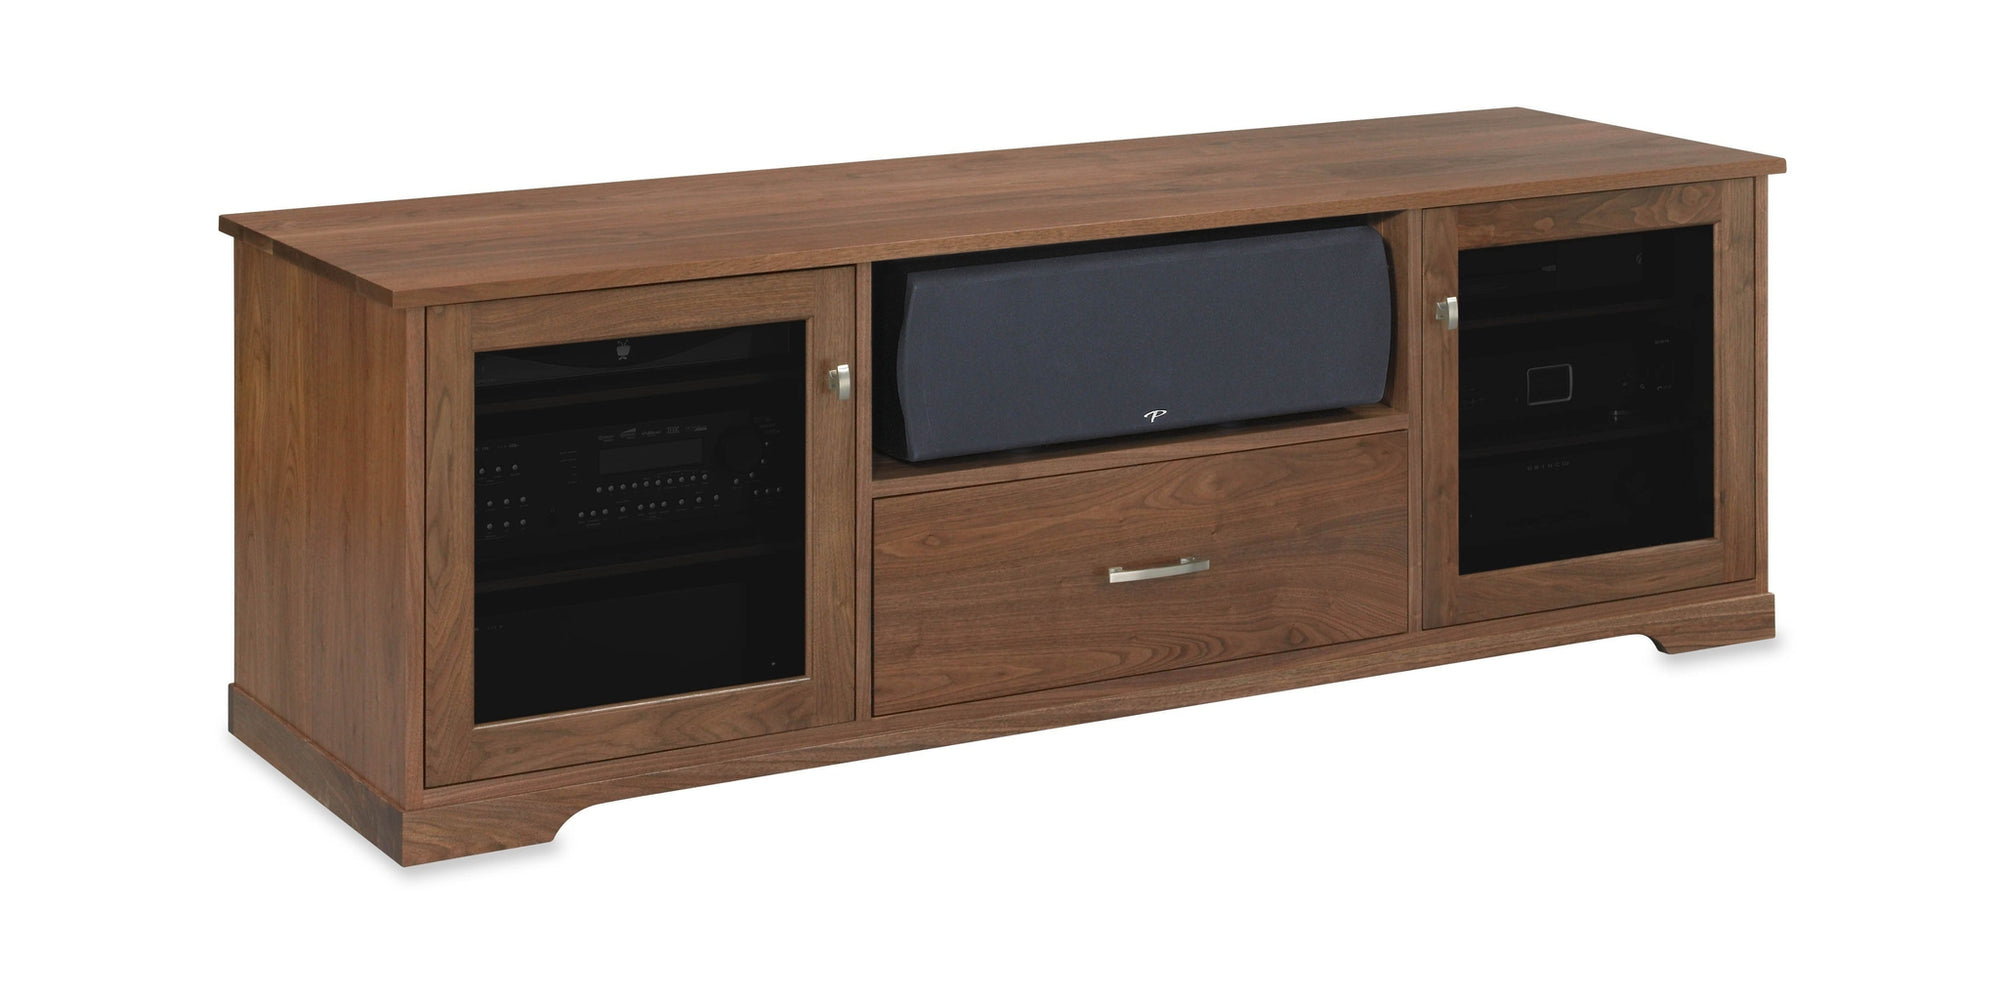 Horizon Ex 72 Inch American Solid Wood Media Console Tv Stand For